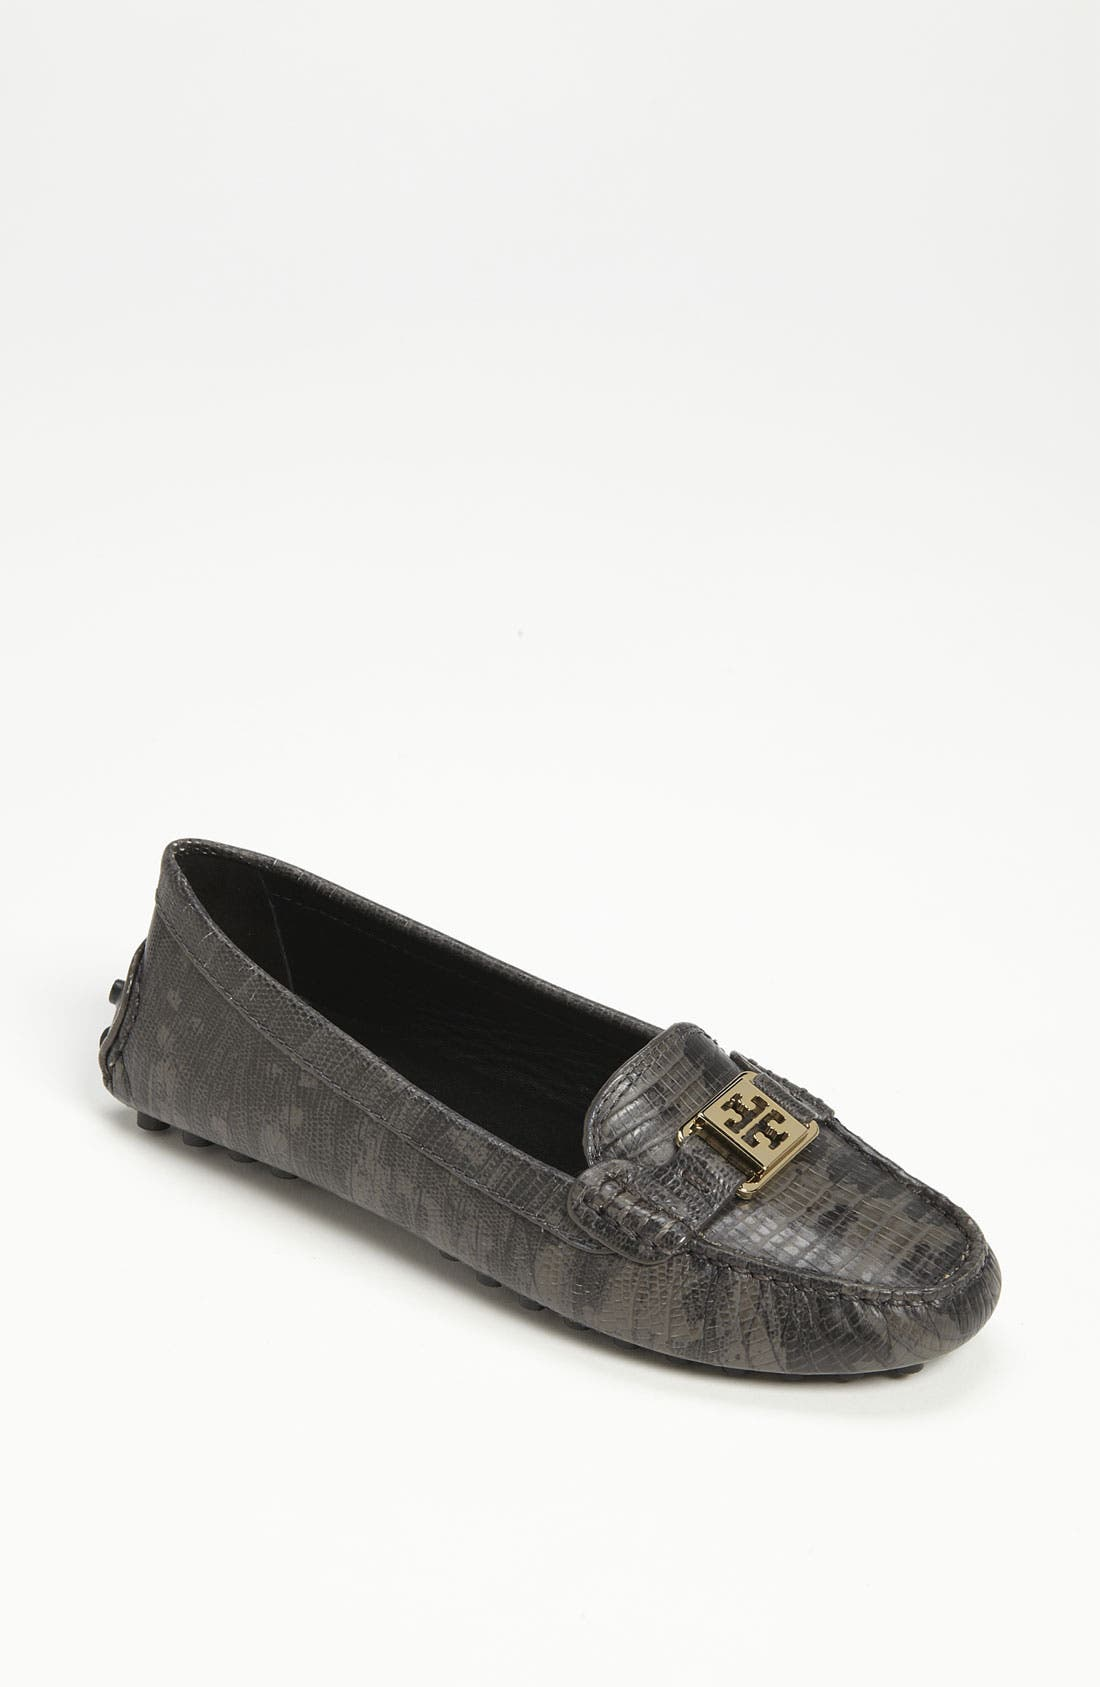 Main Image - Tory Burch 'Kendrick' Driving Moccasin